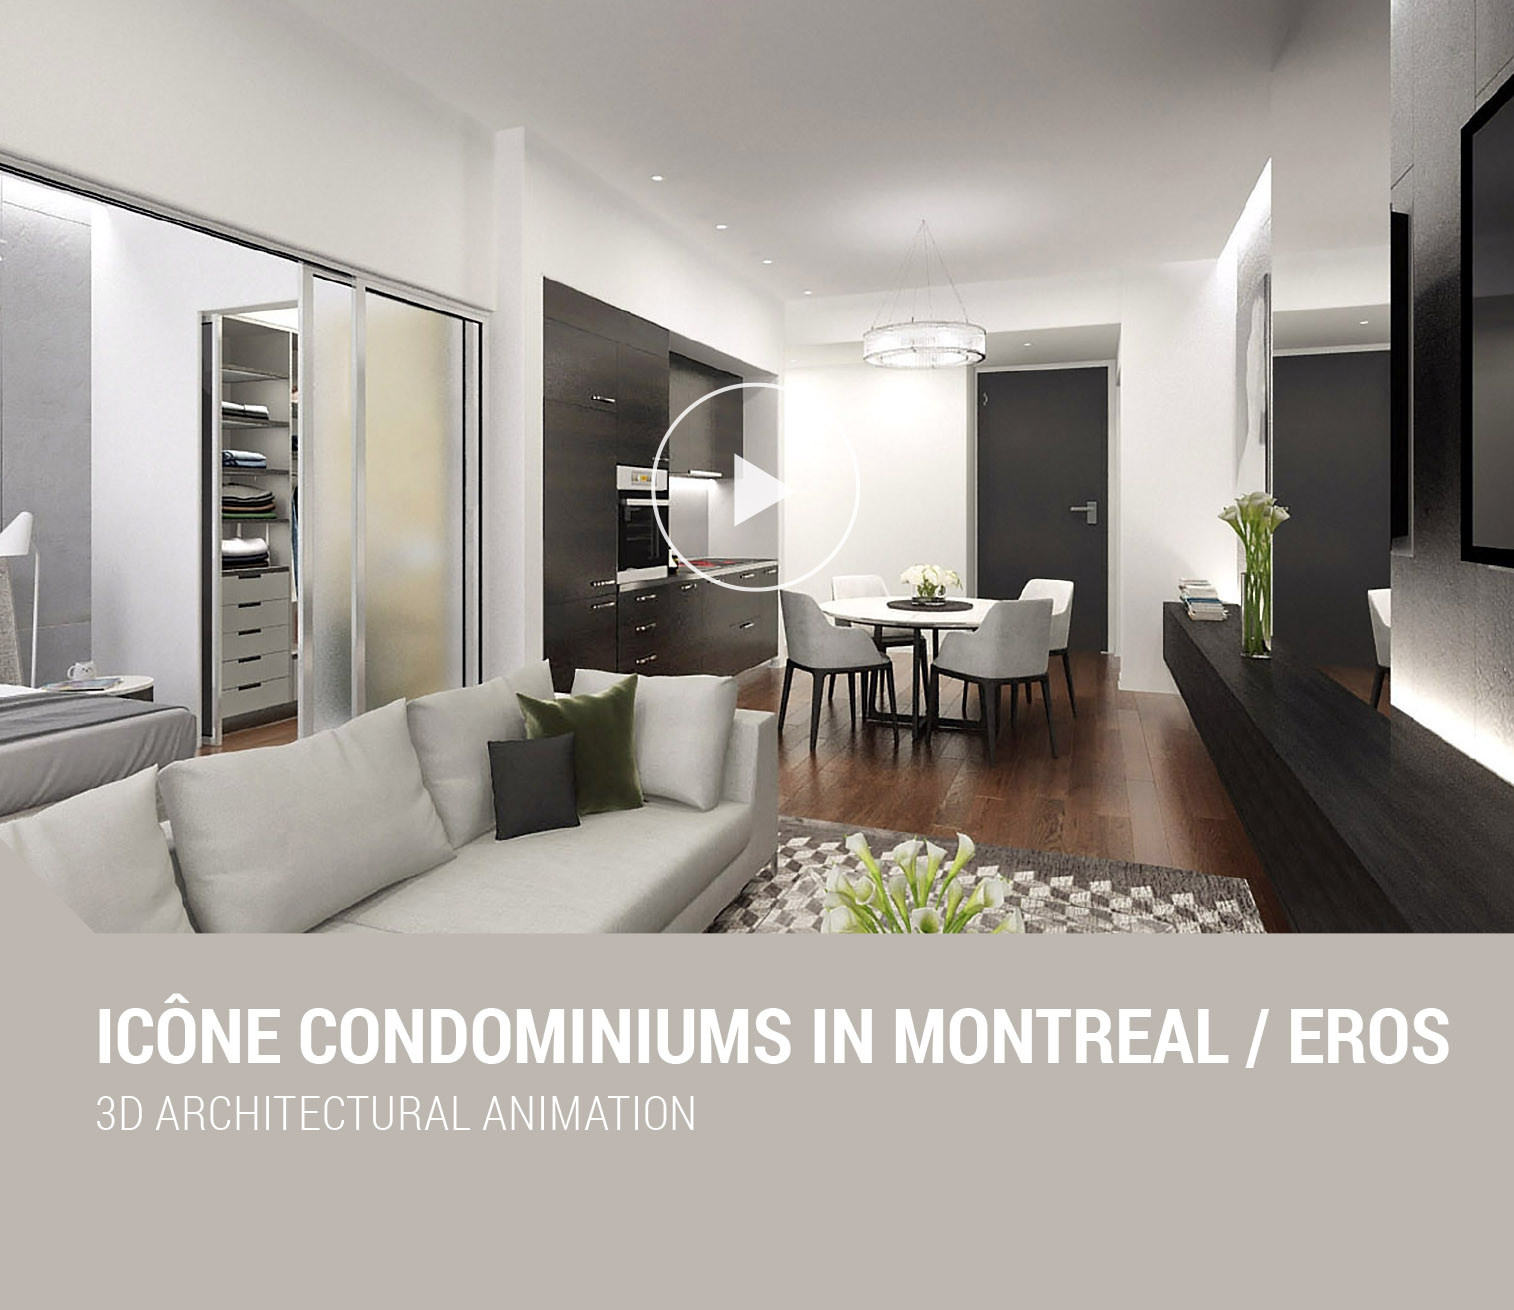 Schema Dimitra Chrona designer, creative director, architectural, 3D visualization, 3D Rendering, branding websites, digital, graphic design, interior design, real estate, luxury property, staging, museum, virtual, art, brochures, exhibitions, logotype, logo, Canada Quebec Montreal Athens Greece schema design icone condominiums eros video small.jpg